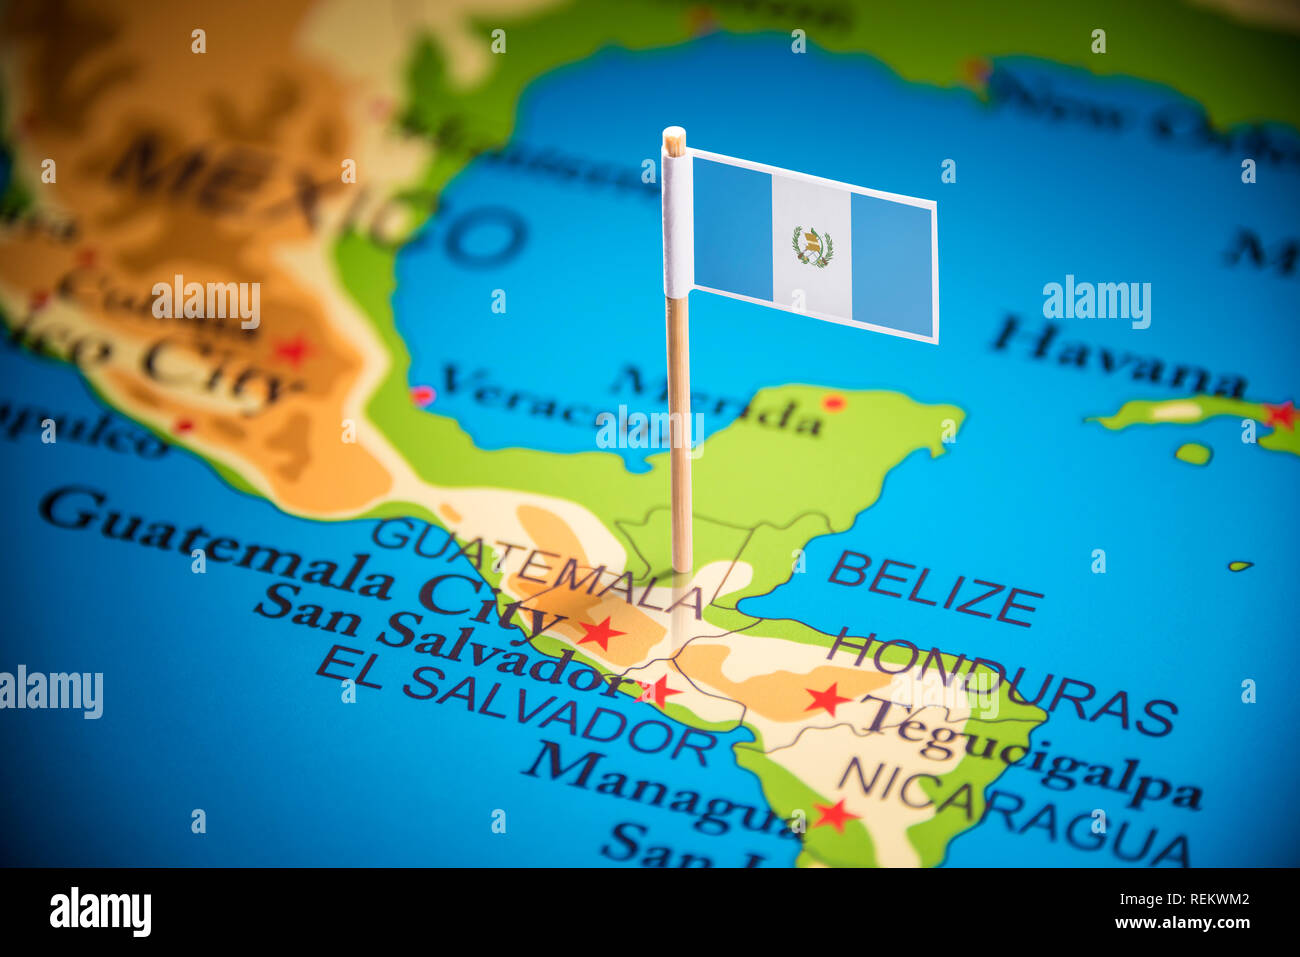 Guatemala marked with a flag on the map Stock Photo: 232777218 - Alamy